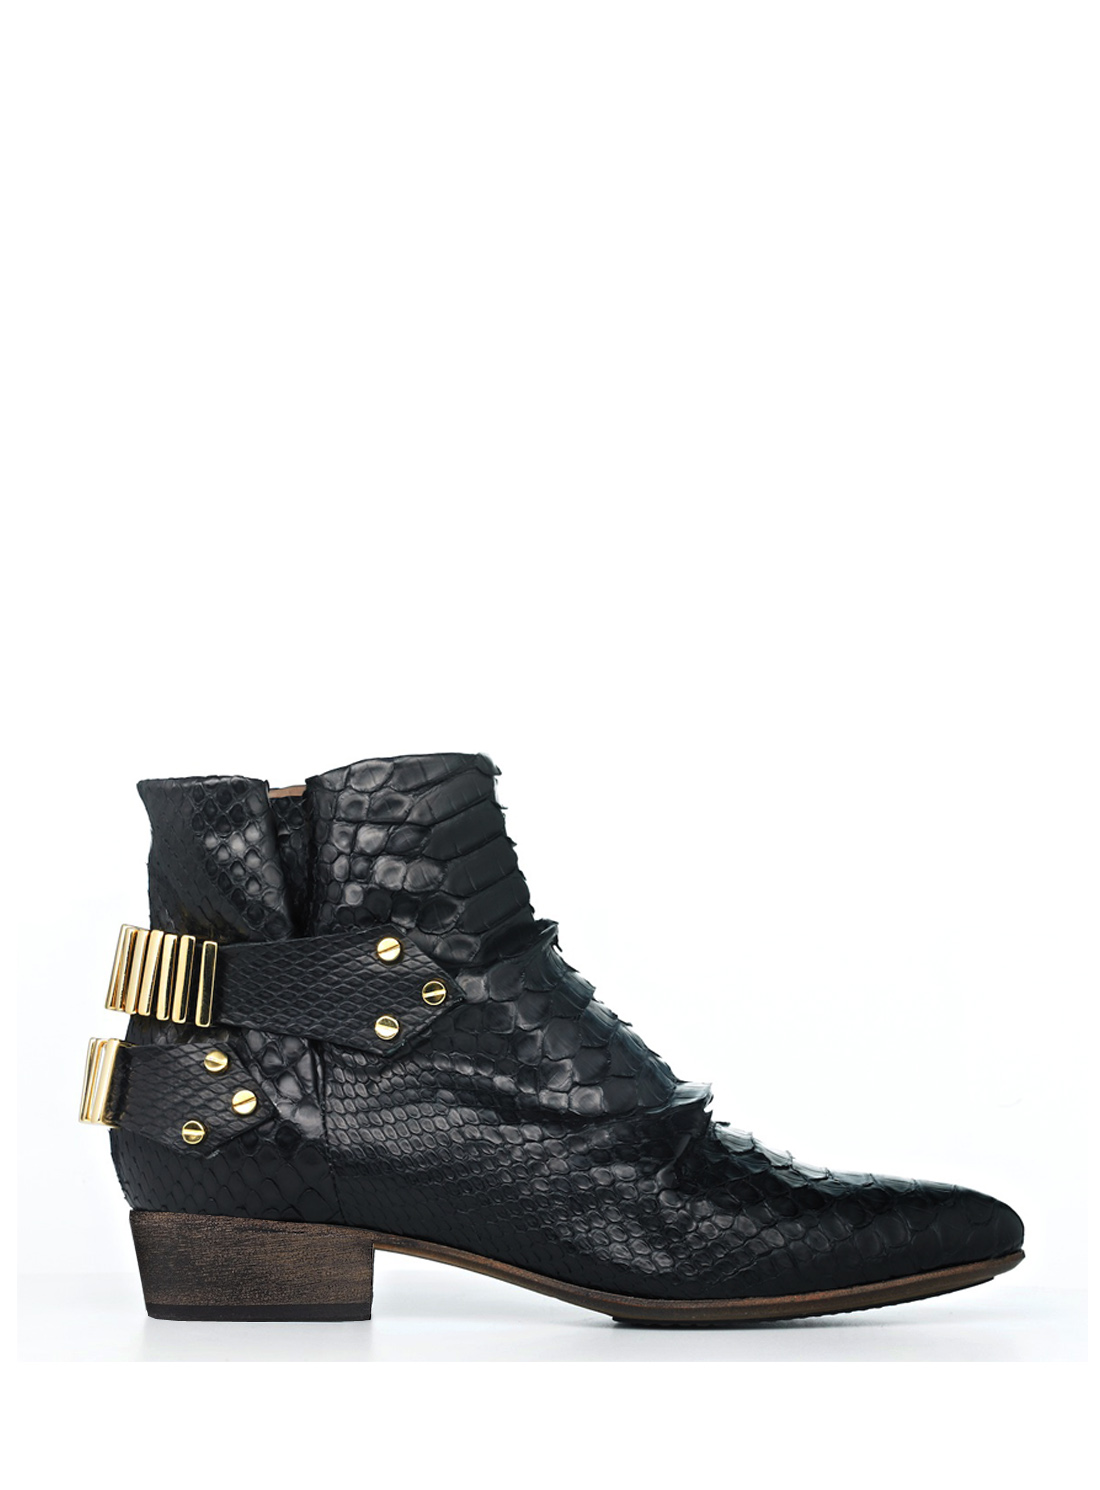 Young British Designers - Lo Ankle Boot by FURY in Black Python by FURY / Shoes    Don't forget to visit www.odiousstyle.blogspot.com to see what else I prepared for you! :)